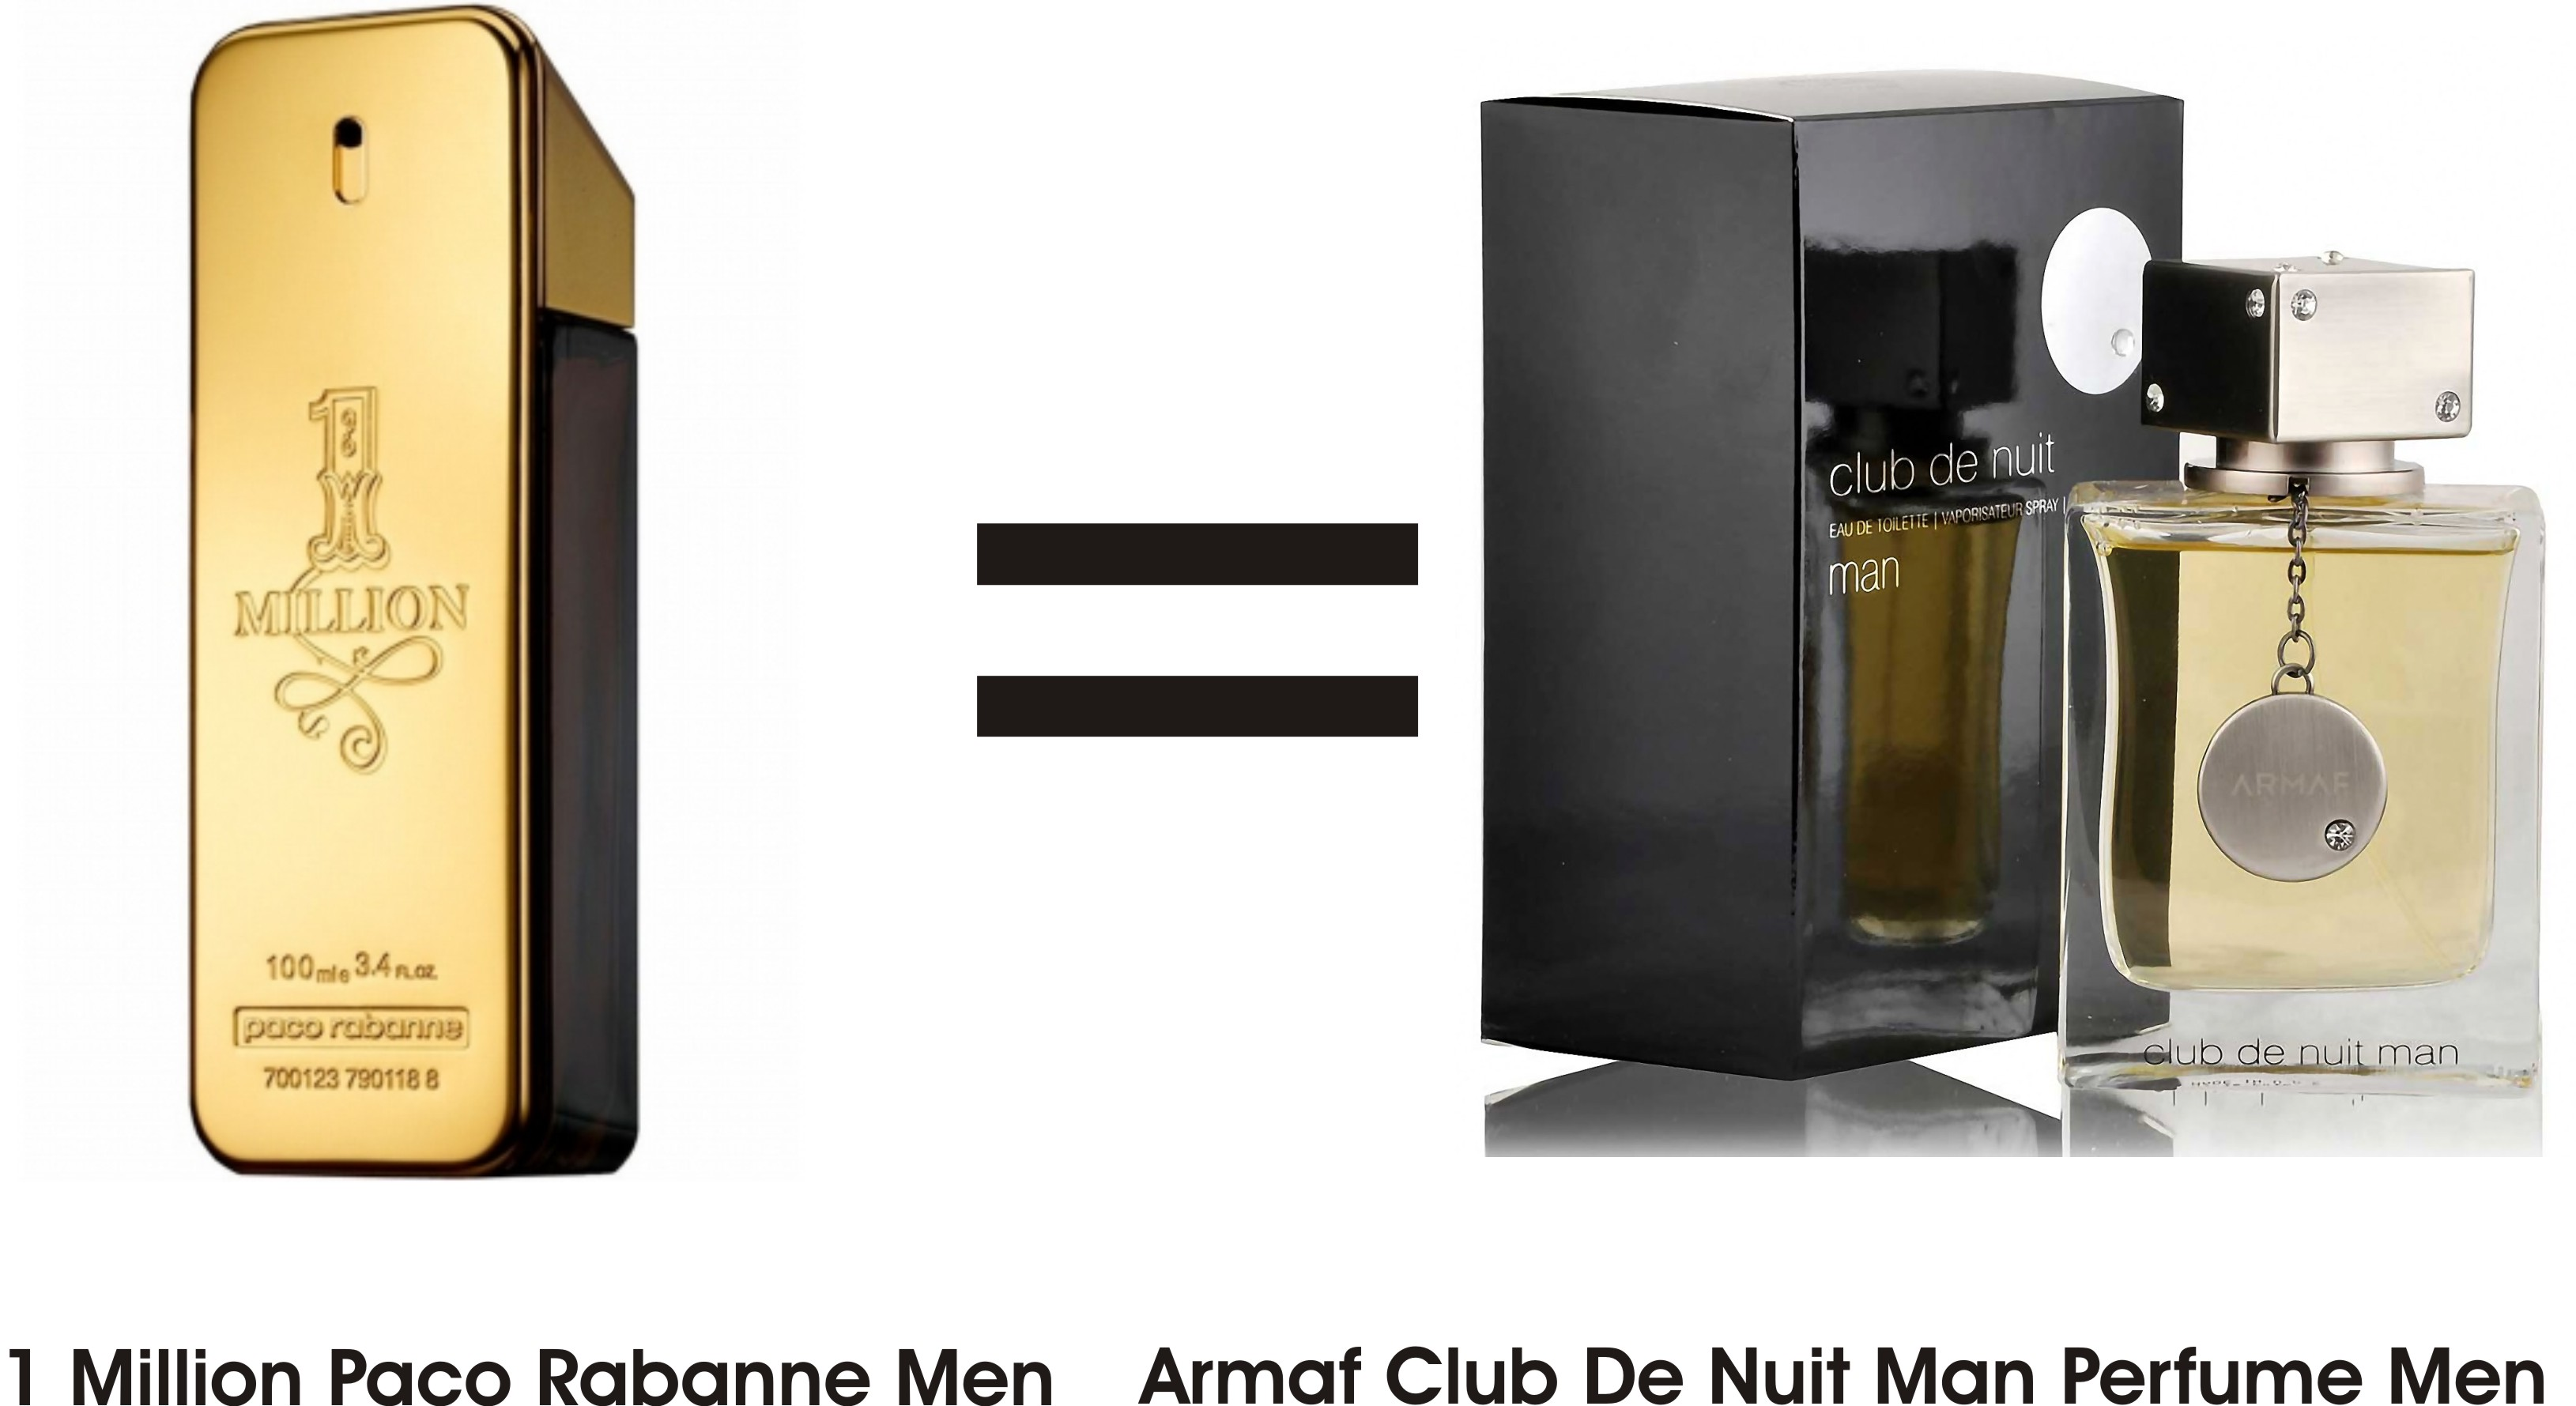 paco-rabanne-million-clone